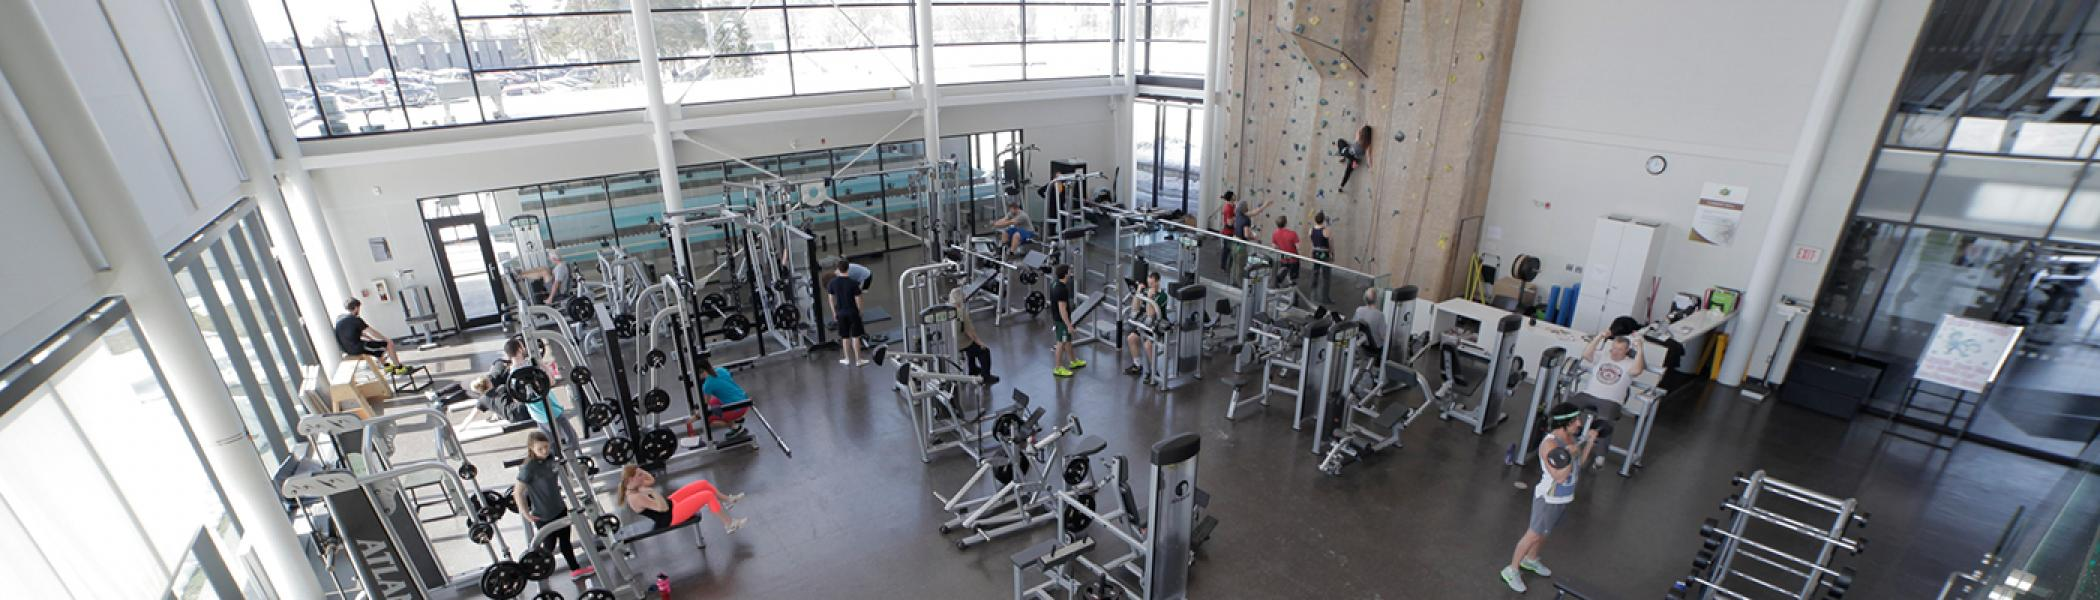 An overview of the Fitness Area at the Trent Athletics Centre